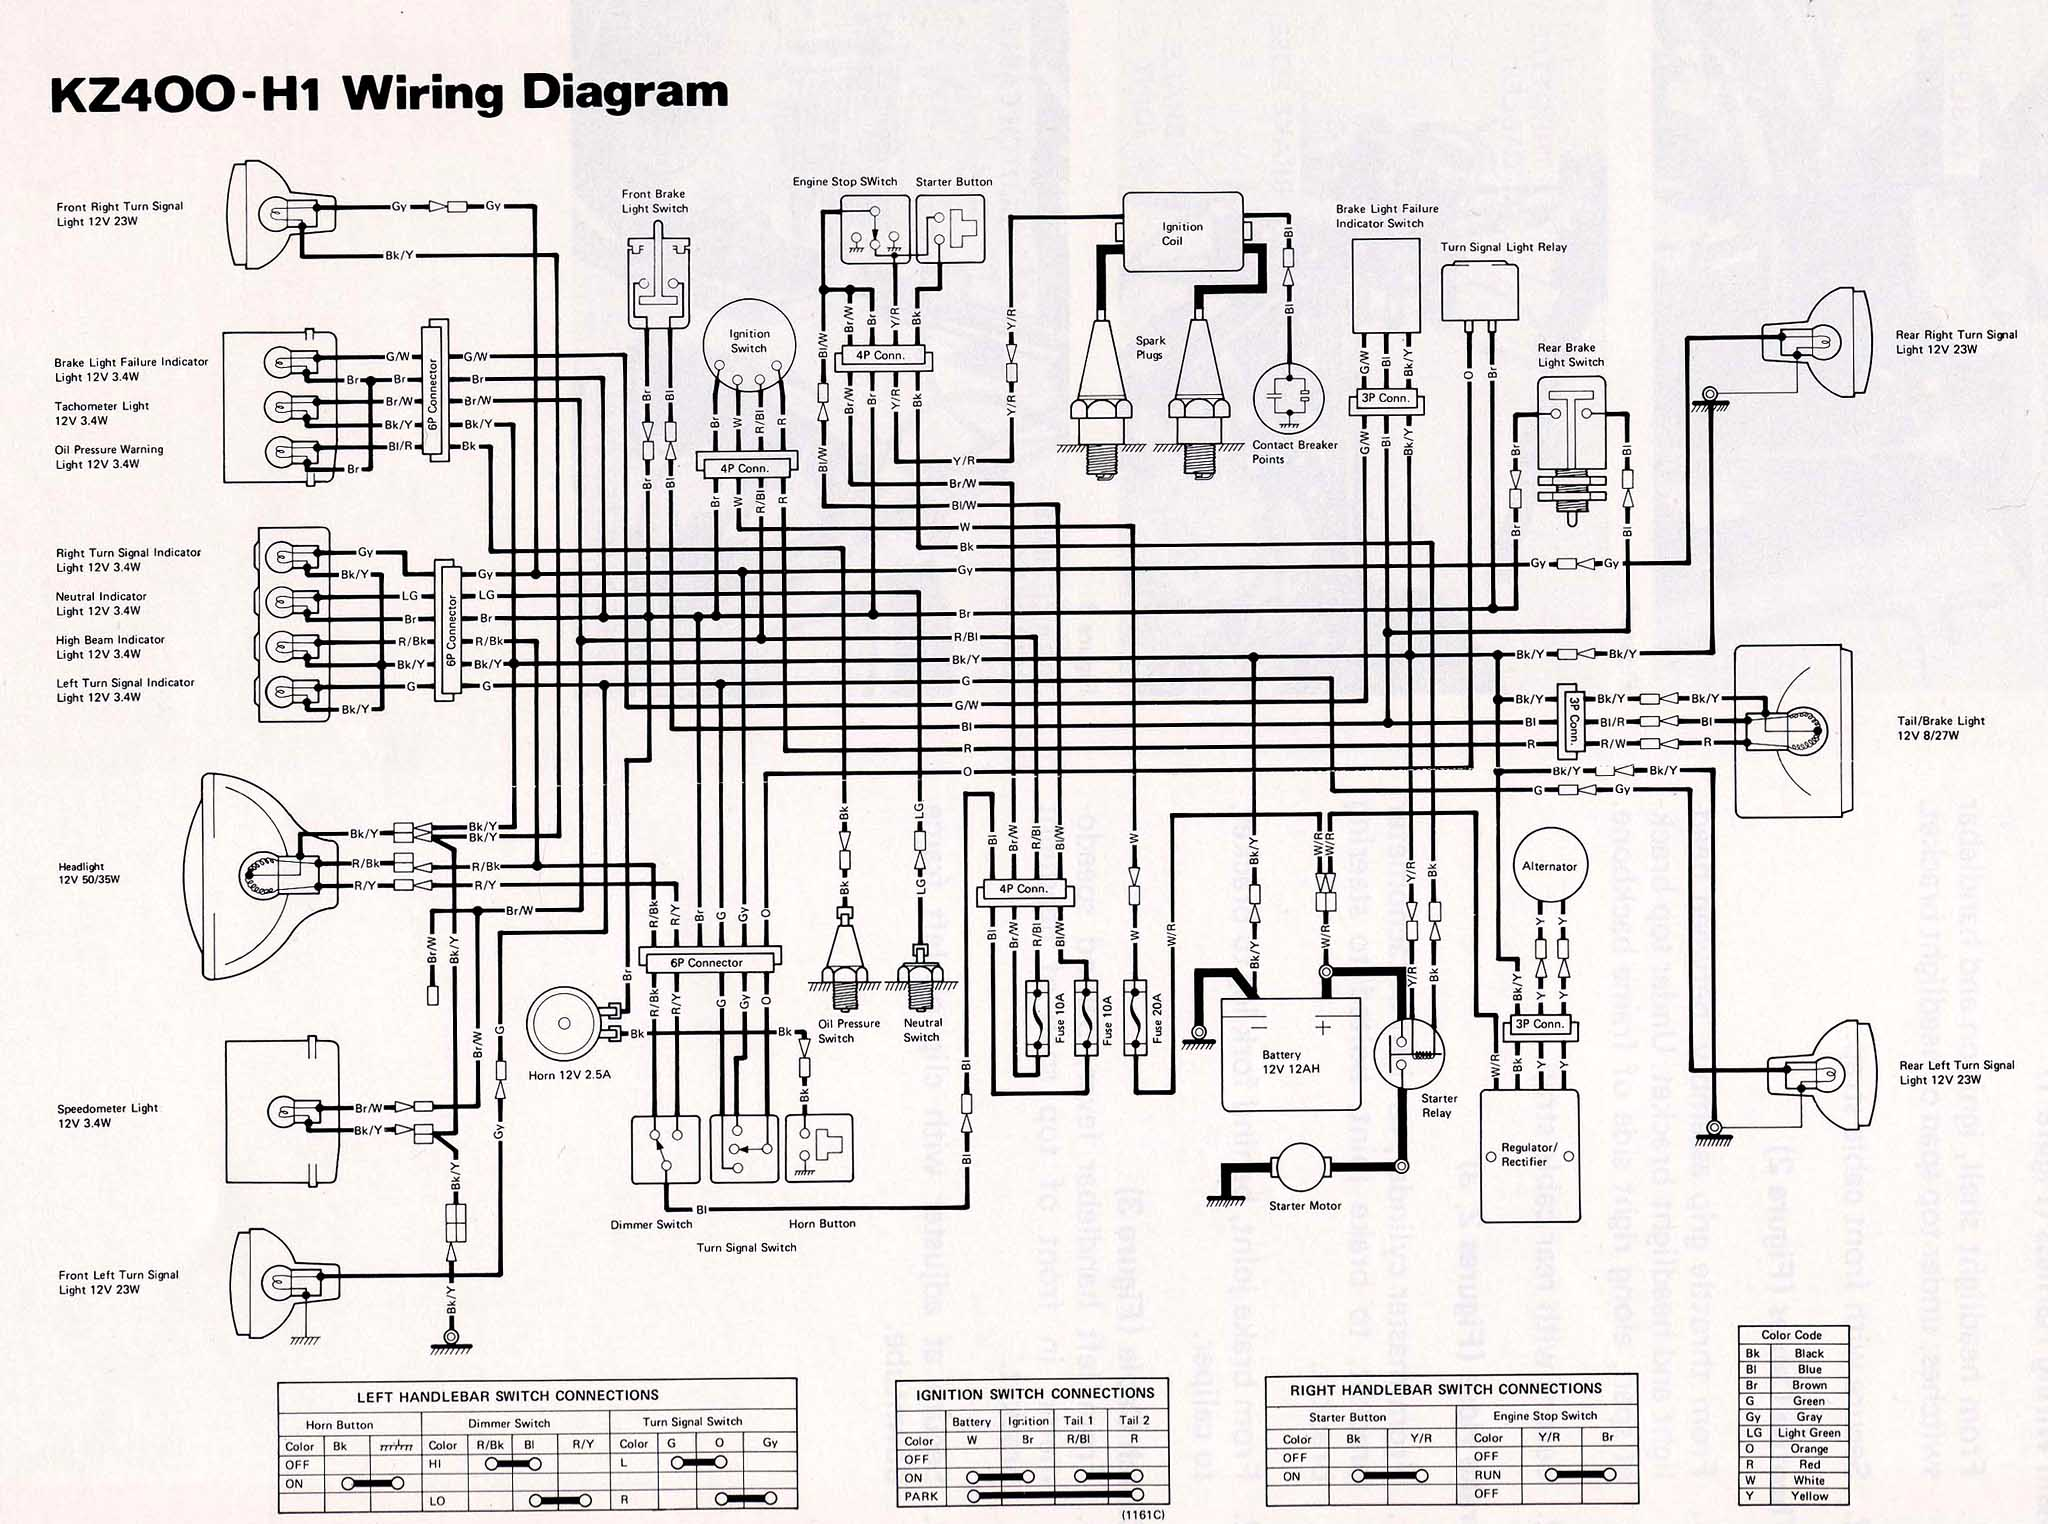 Rotation of KZ400 H1 LTD 22 index of techh tips bilder wiring diagrams 1981 kawasaki 440 ltd wiring diagram at bayanpartner.co